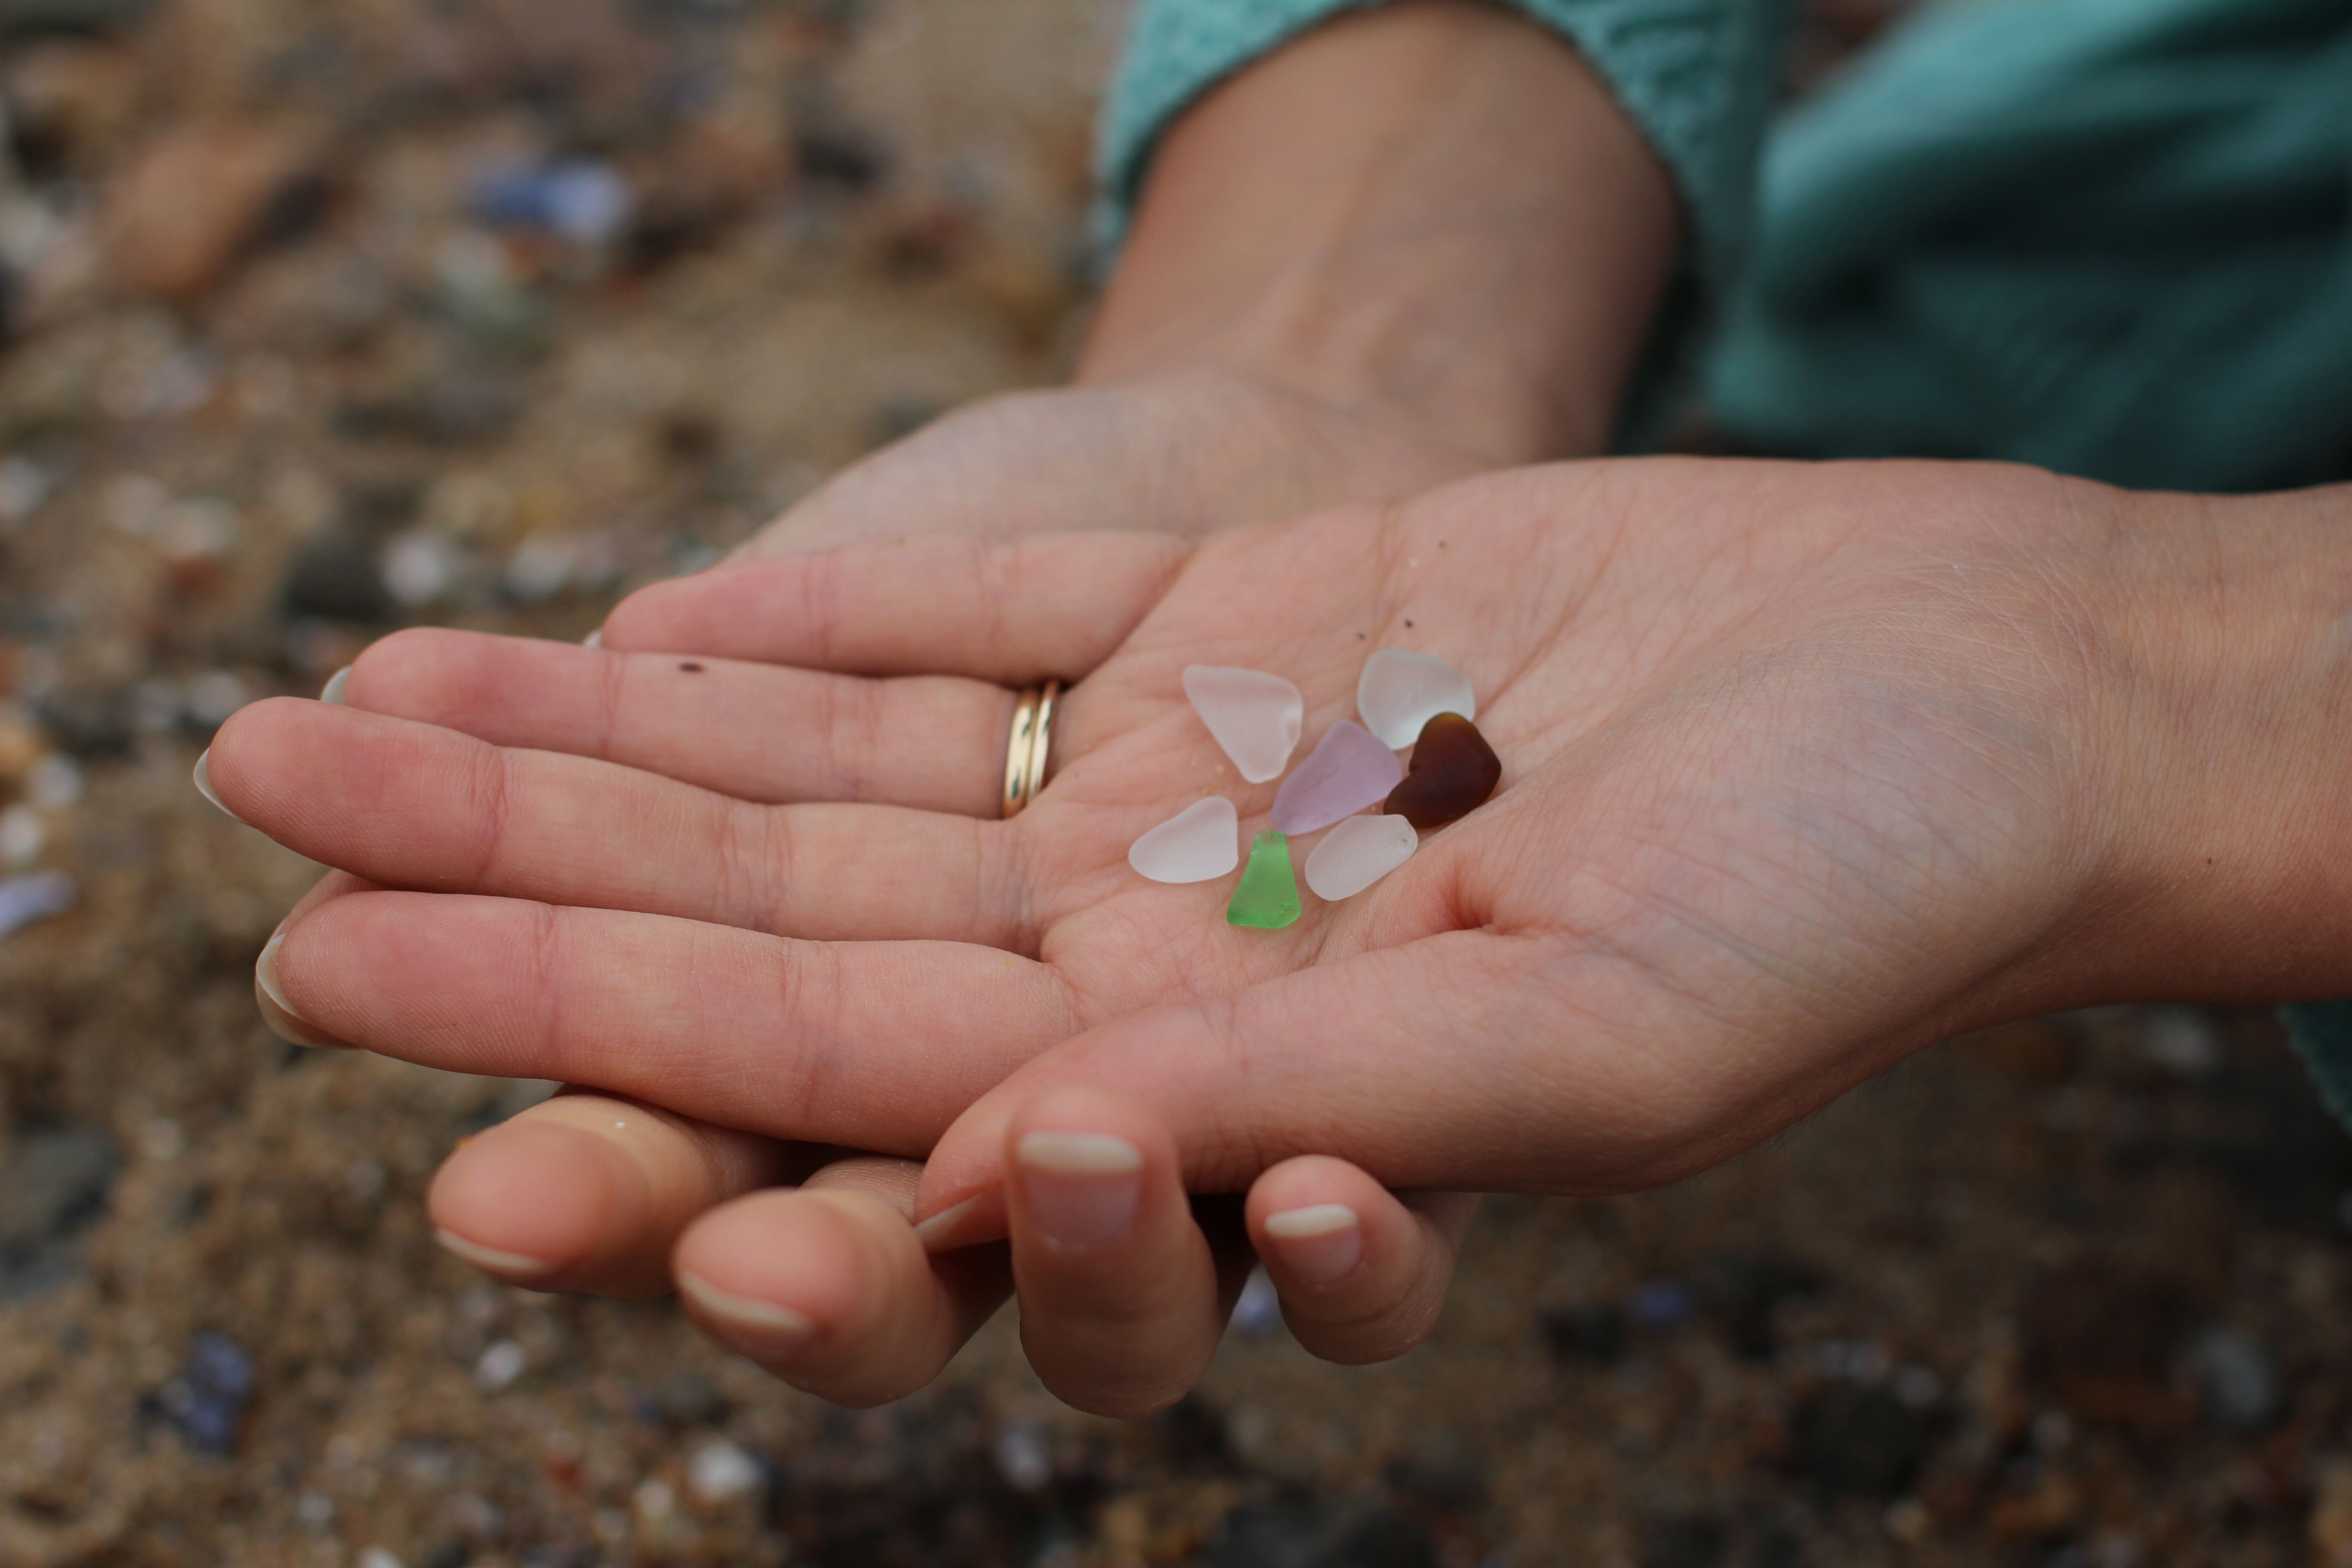 Seaglass from Gloucester, MA